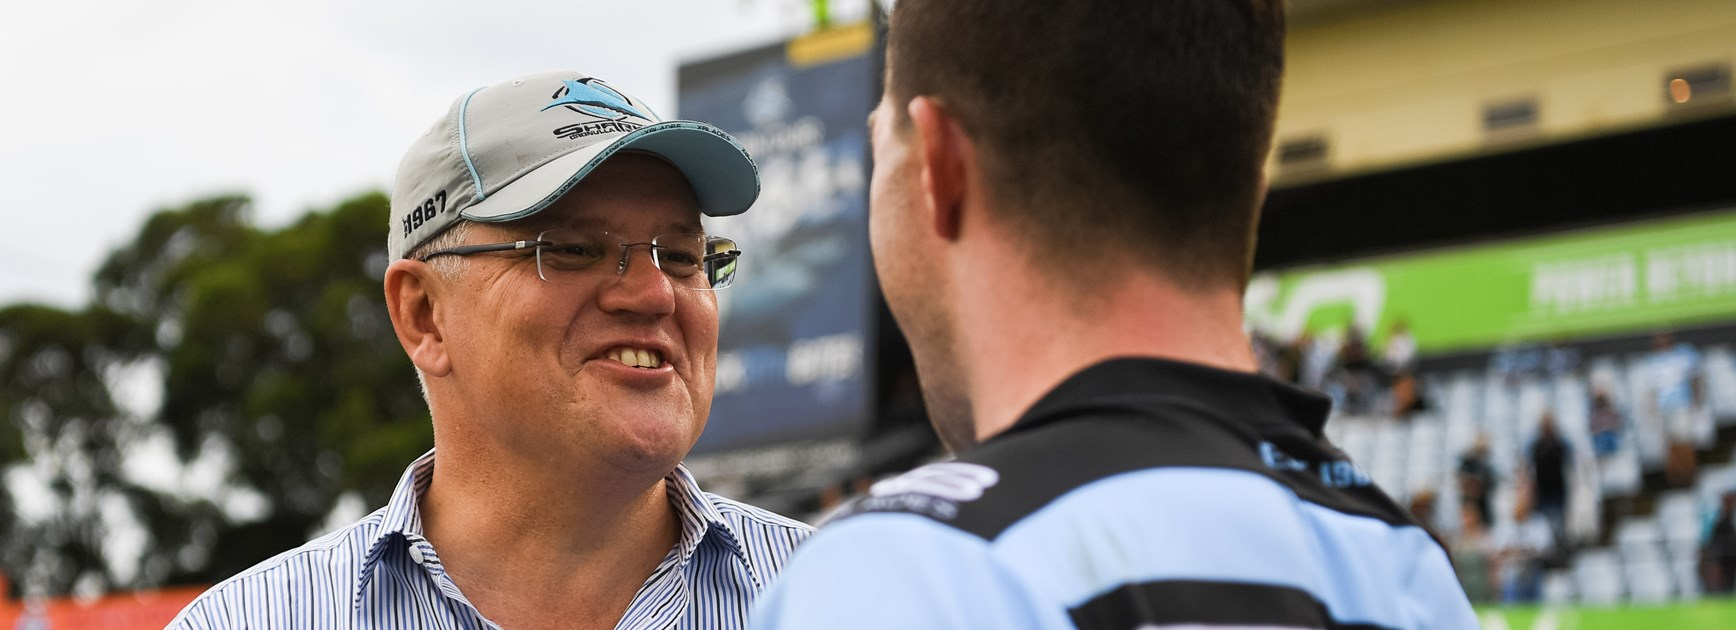 PM offers cautious support for NRL's return bid